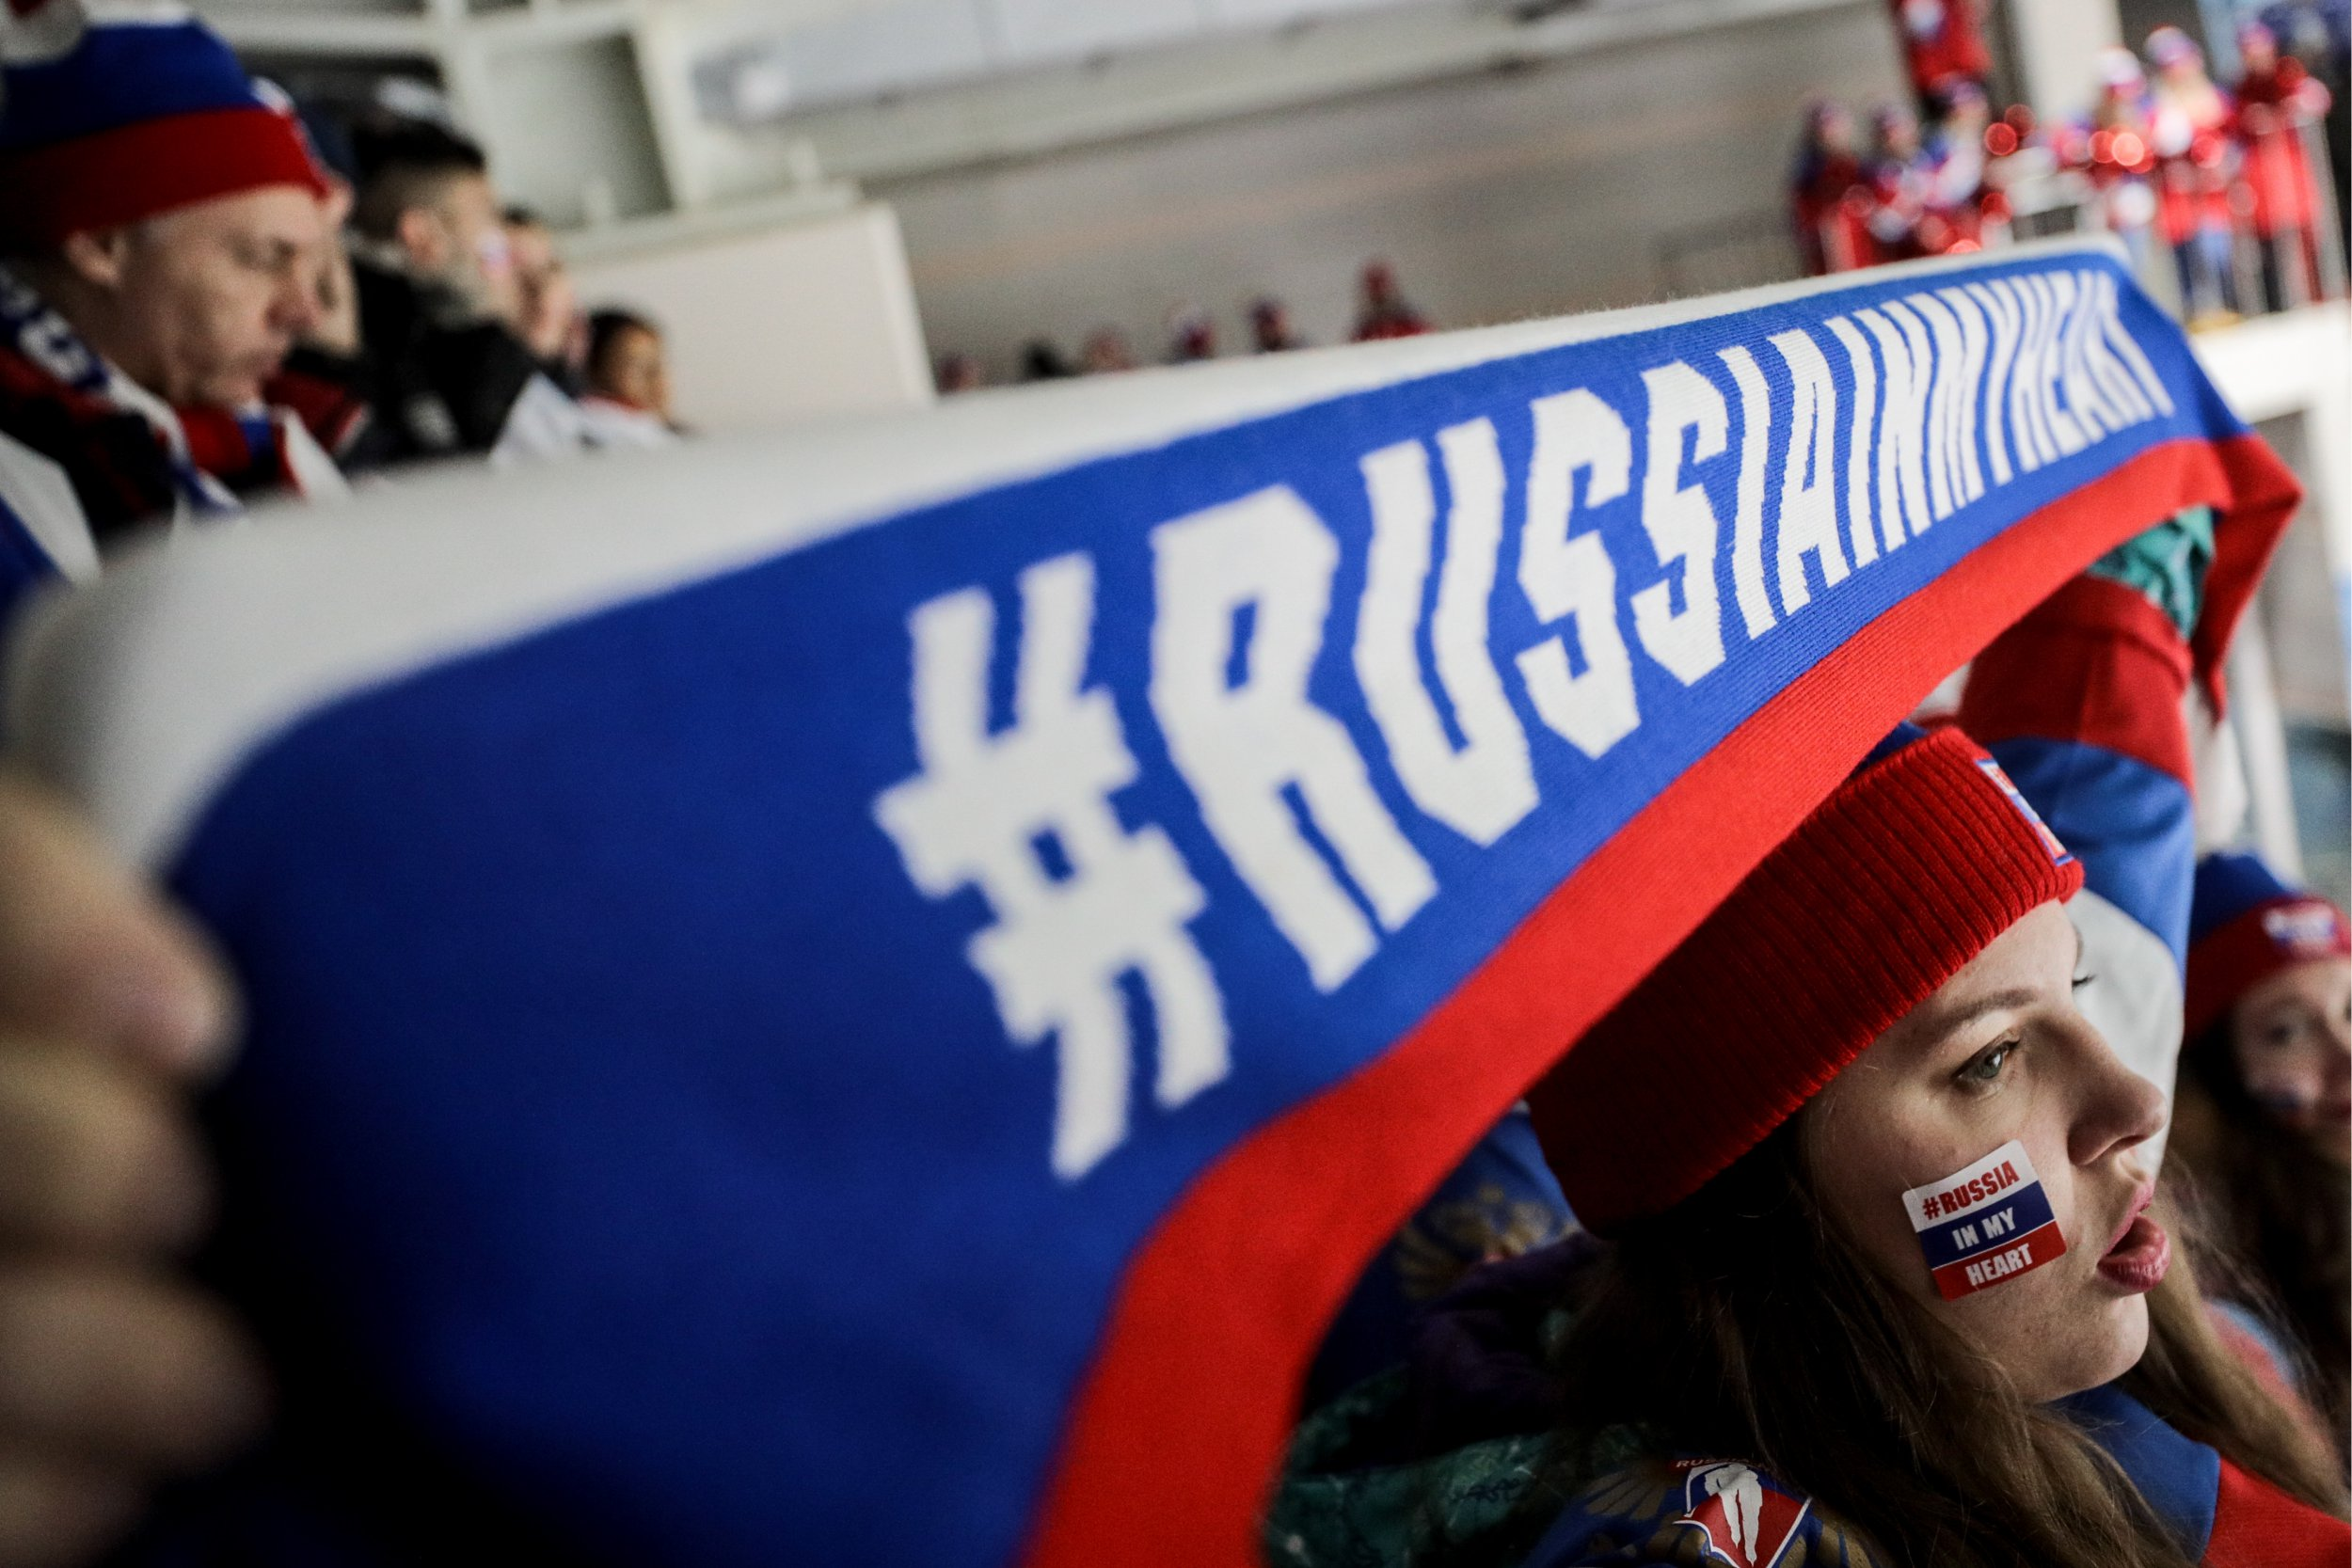 Russia banned from flying national flag at the end of Winter Olympics